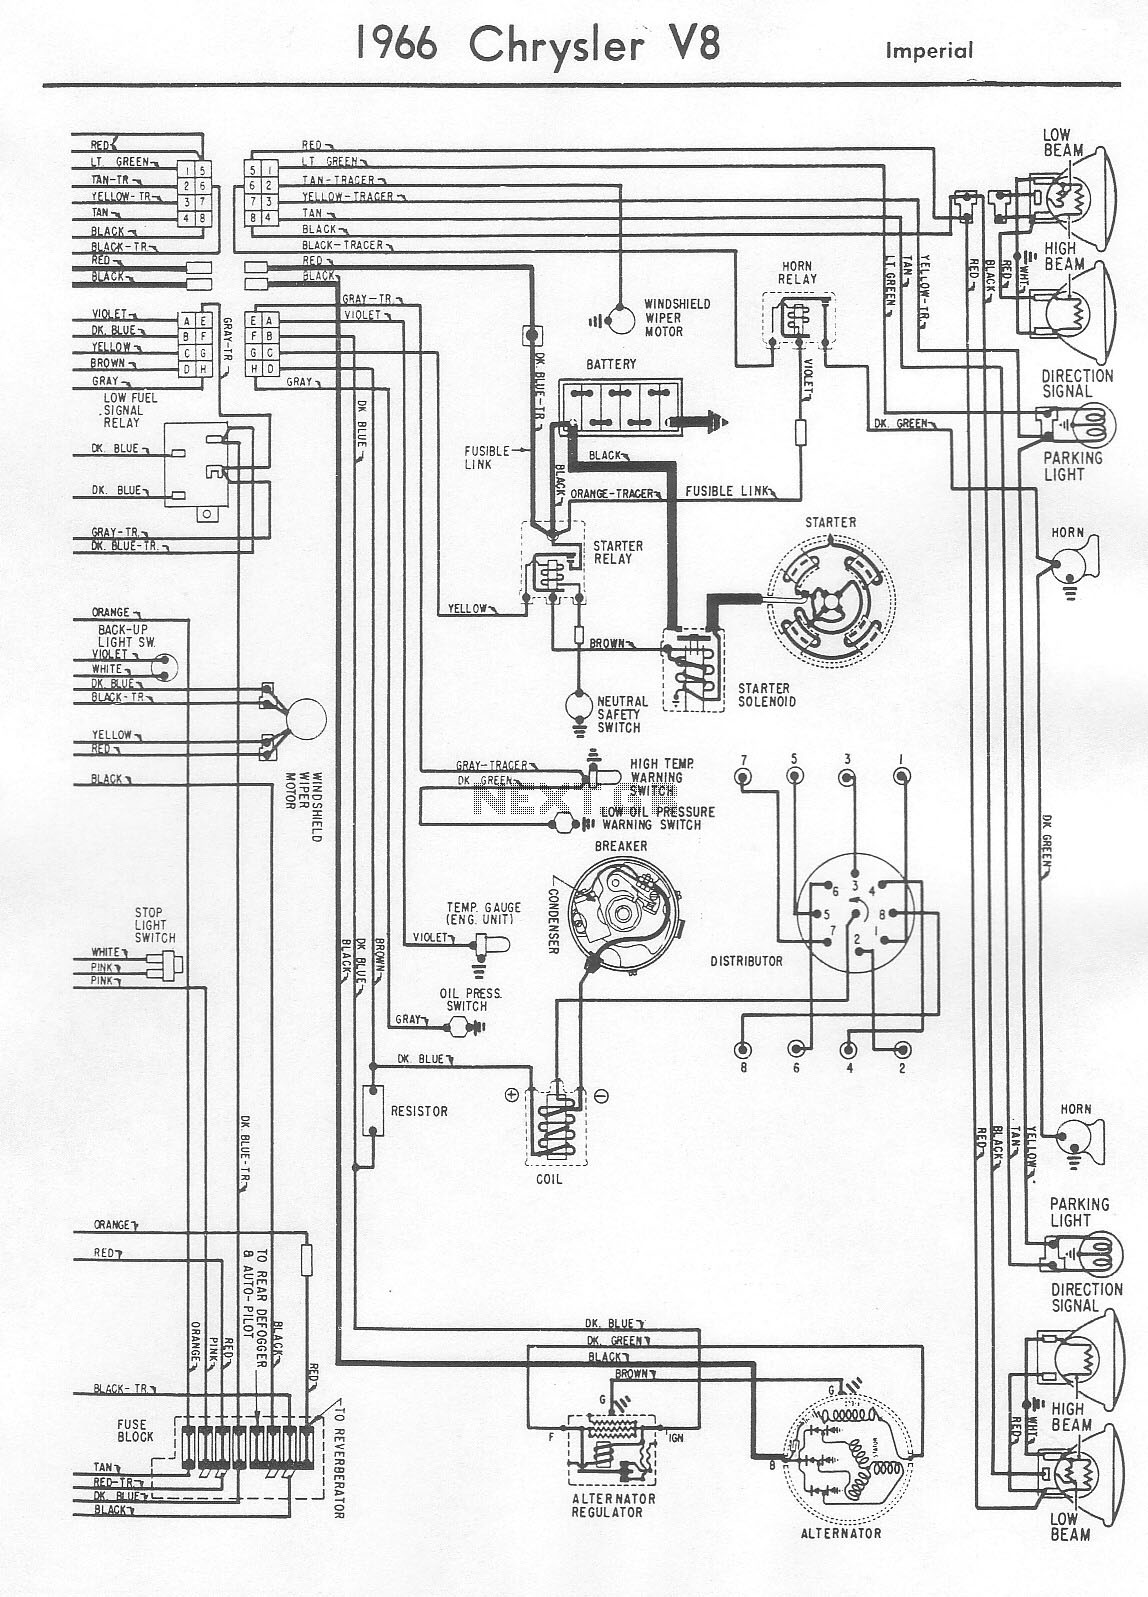 Clock Circuit Page 8 Meter Counter Circuits Next